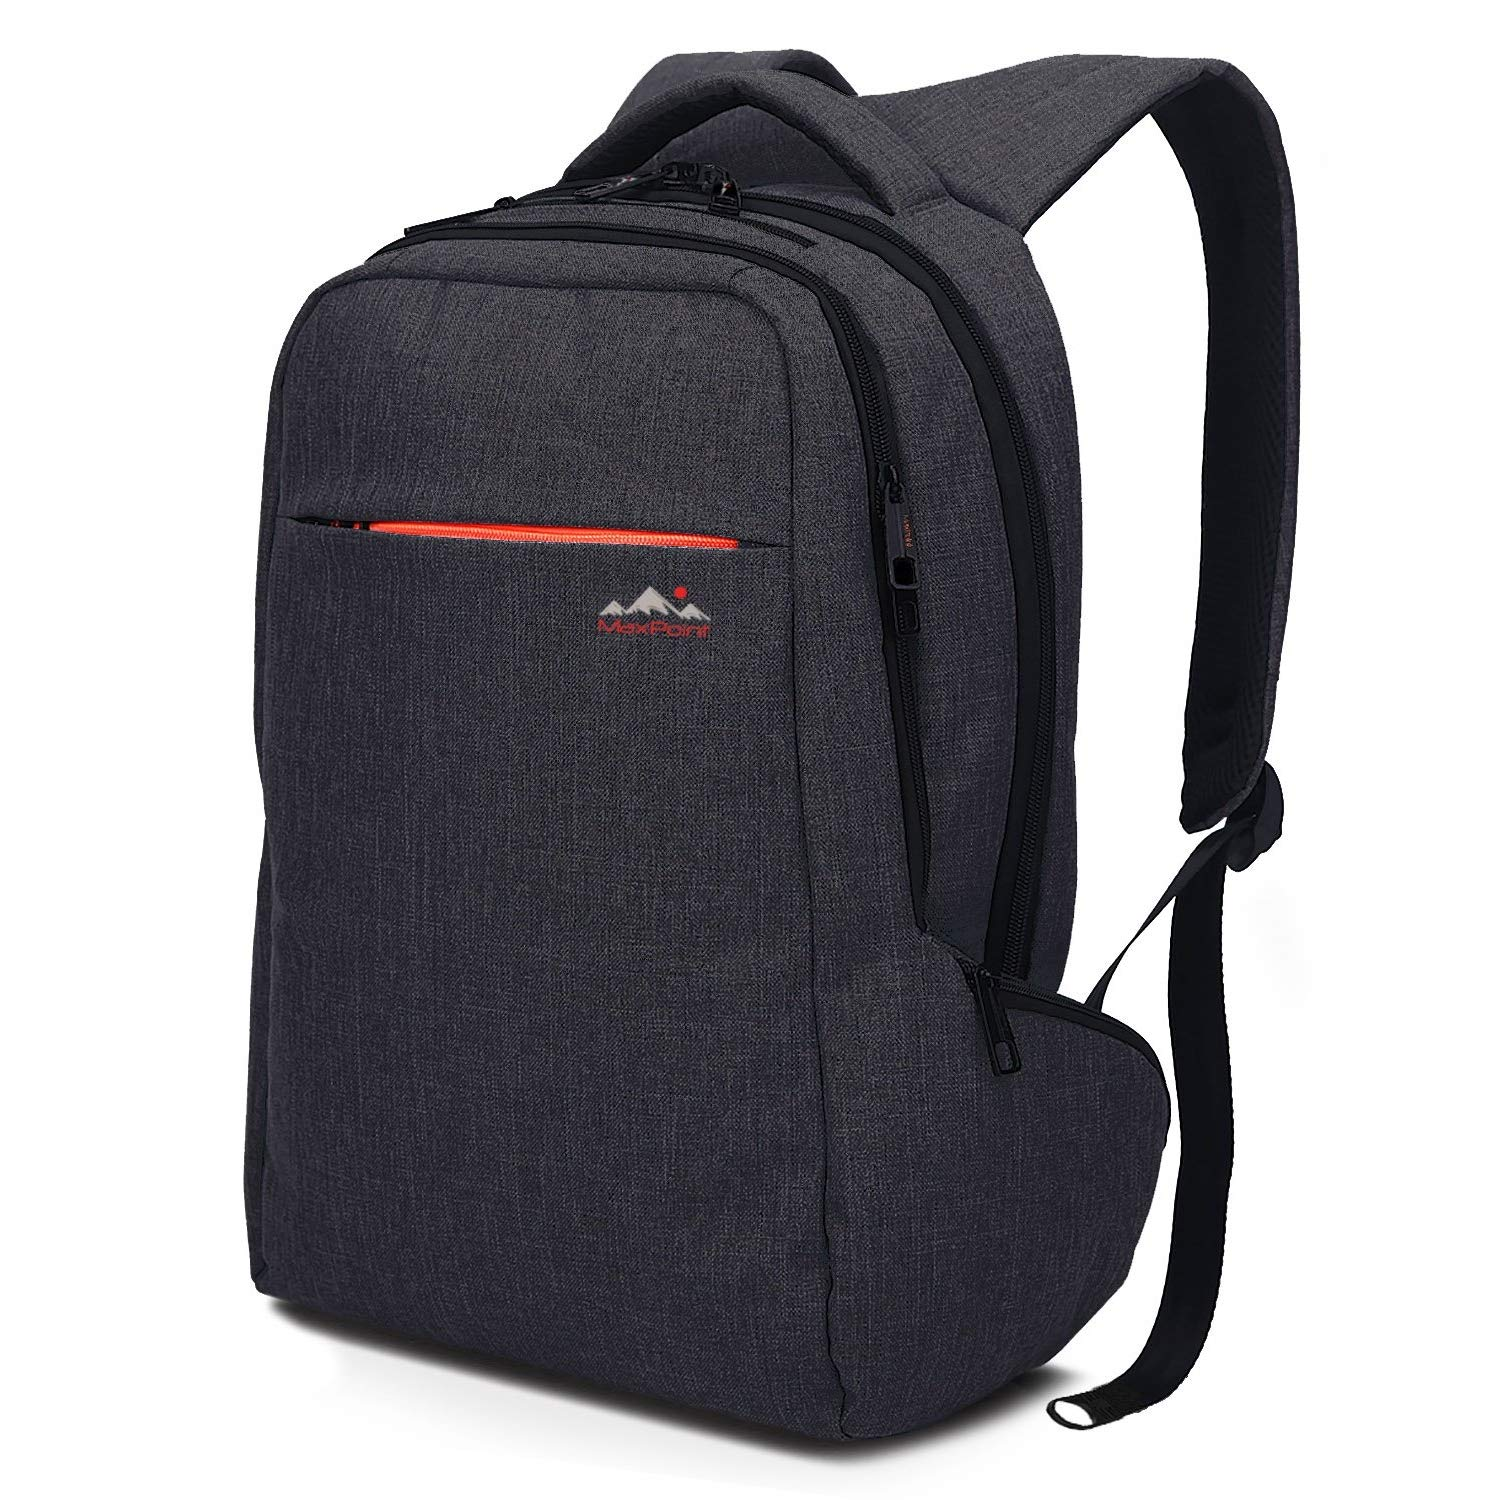 MaxPoint 15.6 inch Tear Water Resistant Slim Laptop Backpack for Men and Woman Backpack Laptop with Anti-Theft Zipper for Your Safety Best Laptop School and College Backpack for Boys Dark Grey